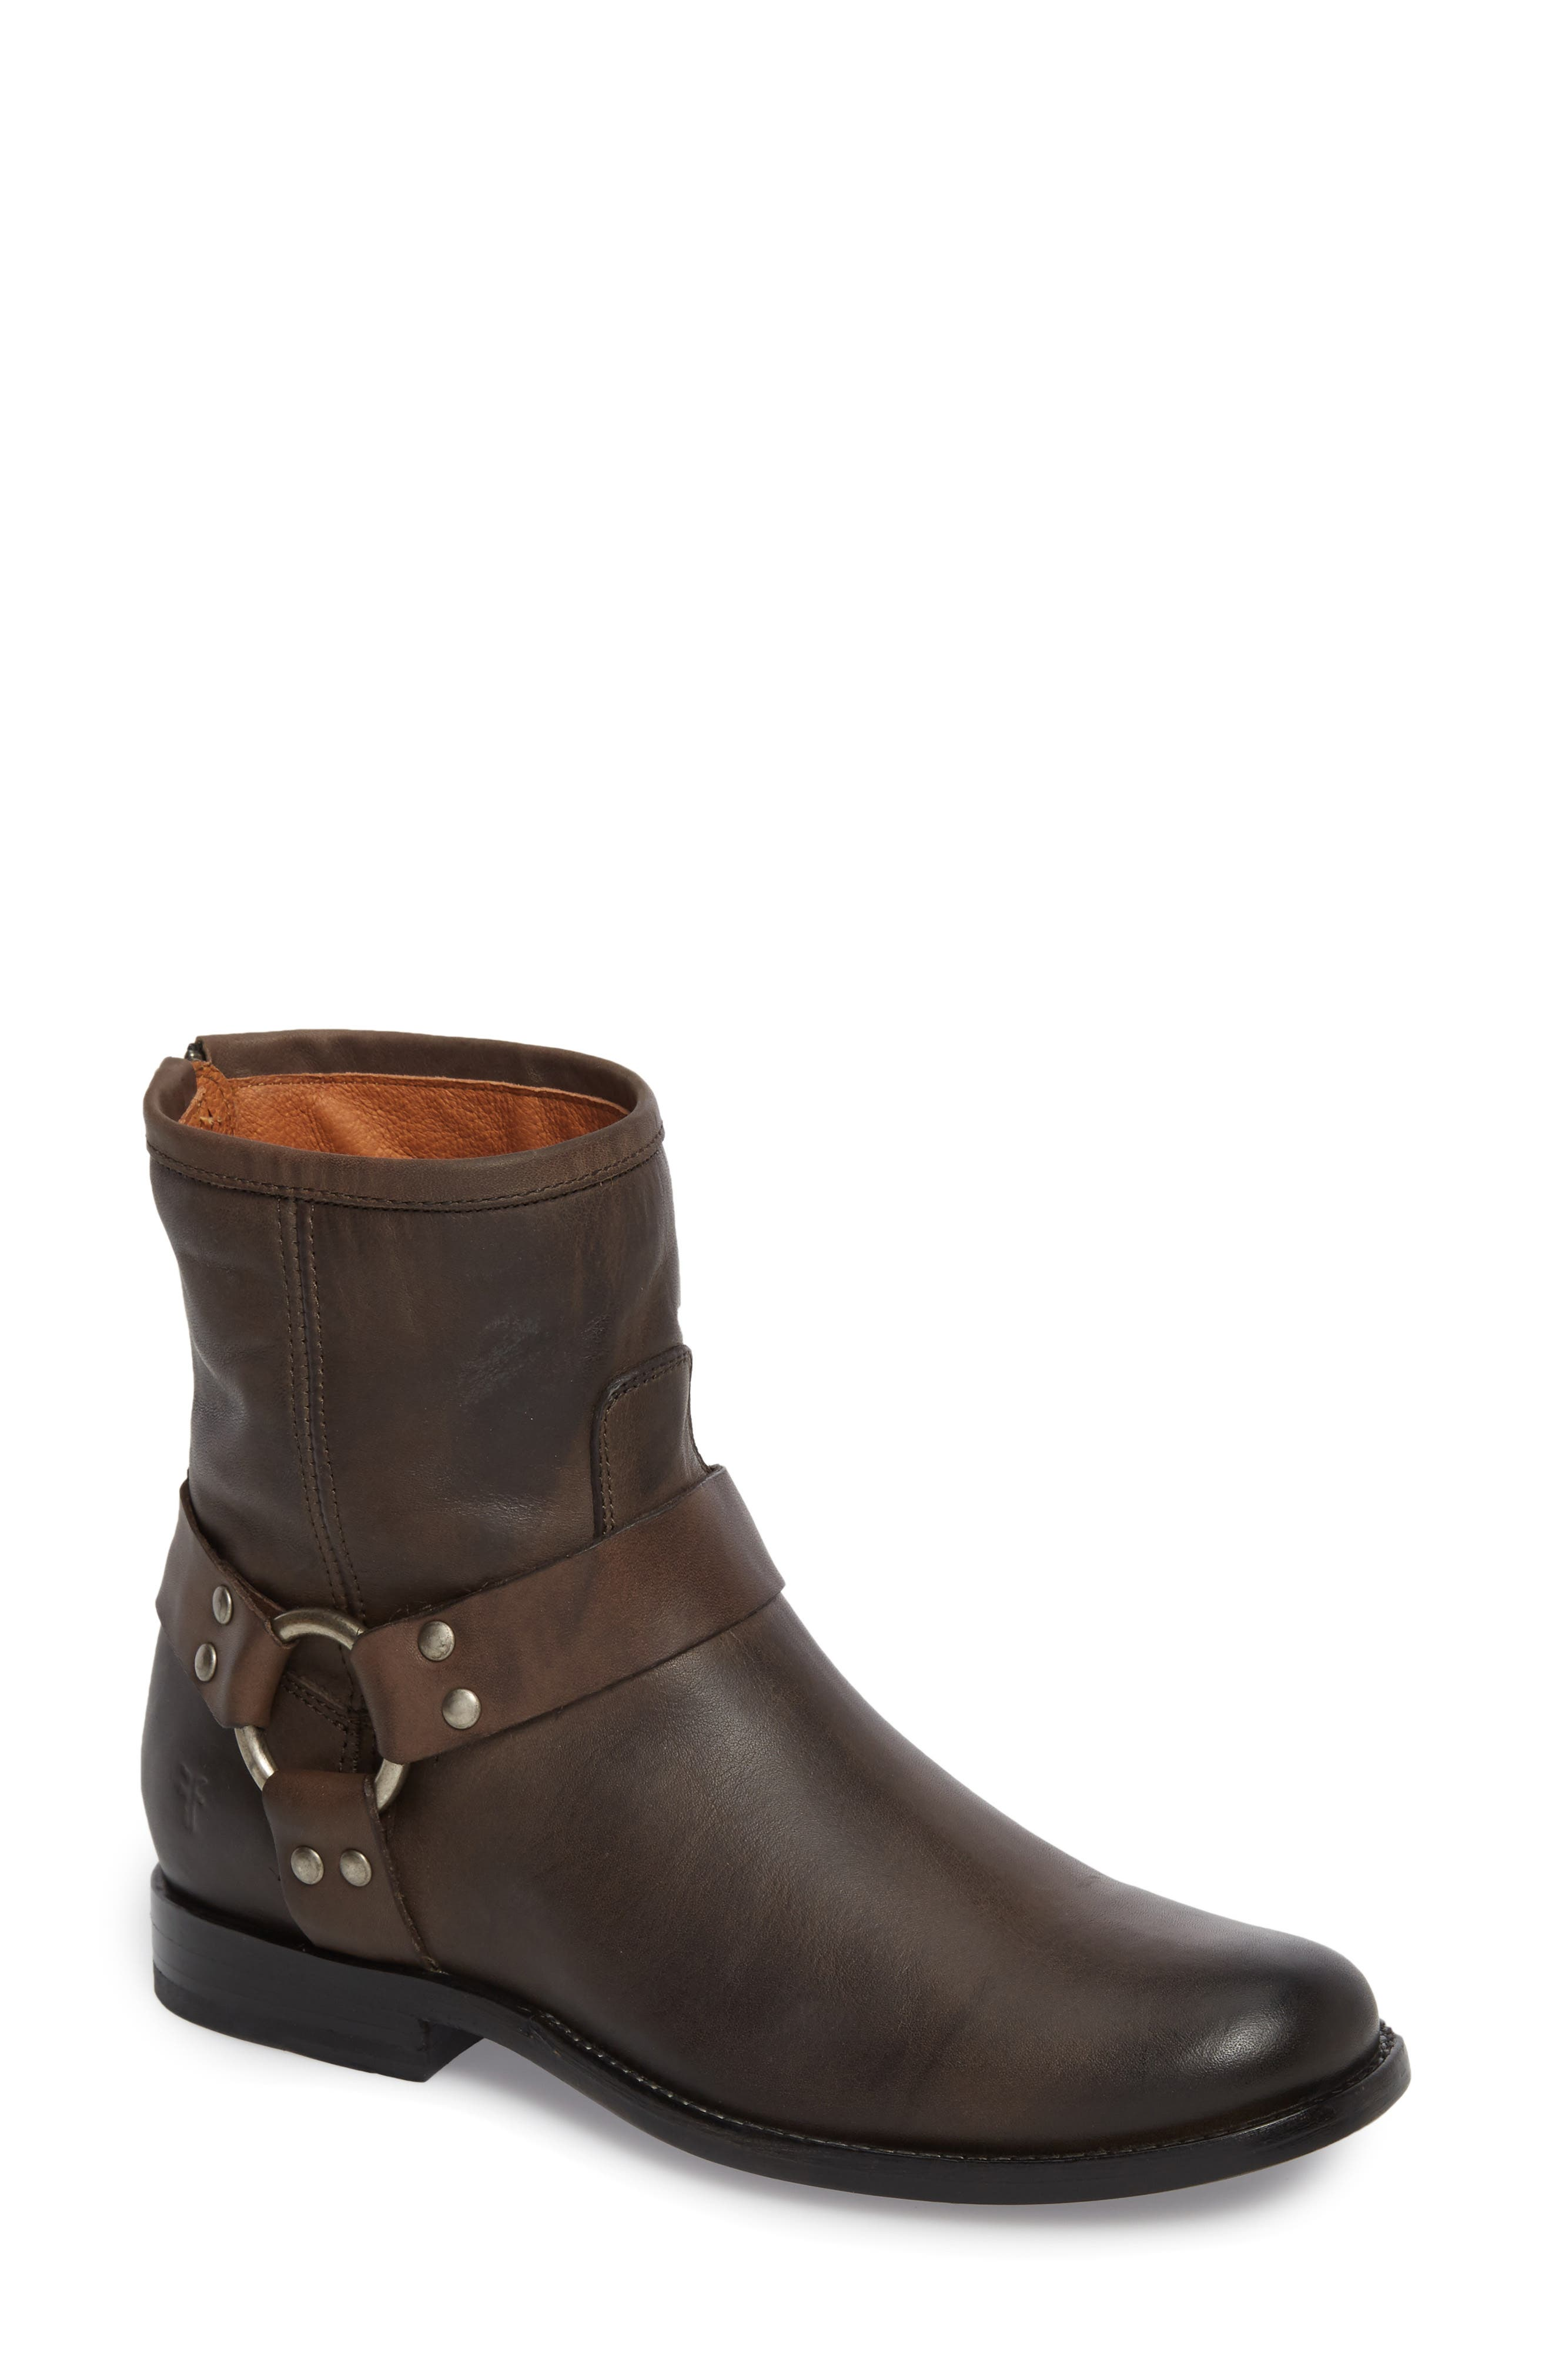 Phillip Harness Boot,                             Main thumbnail 1, color,                             Smoke Leather